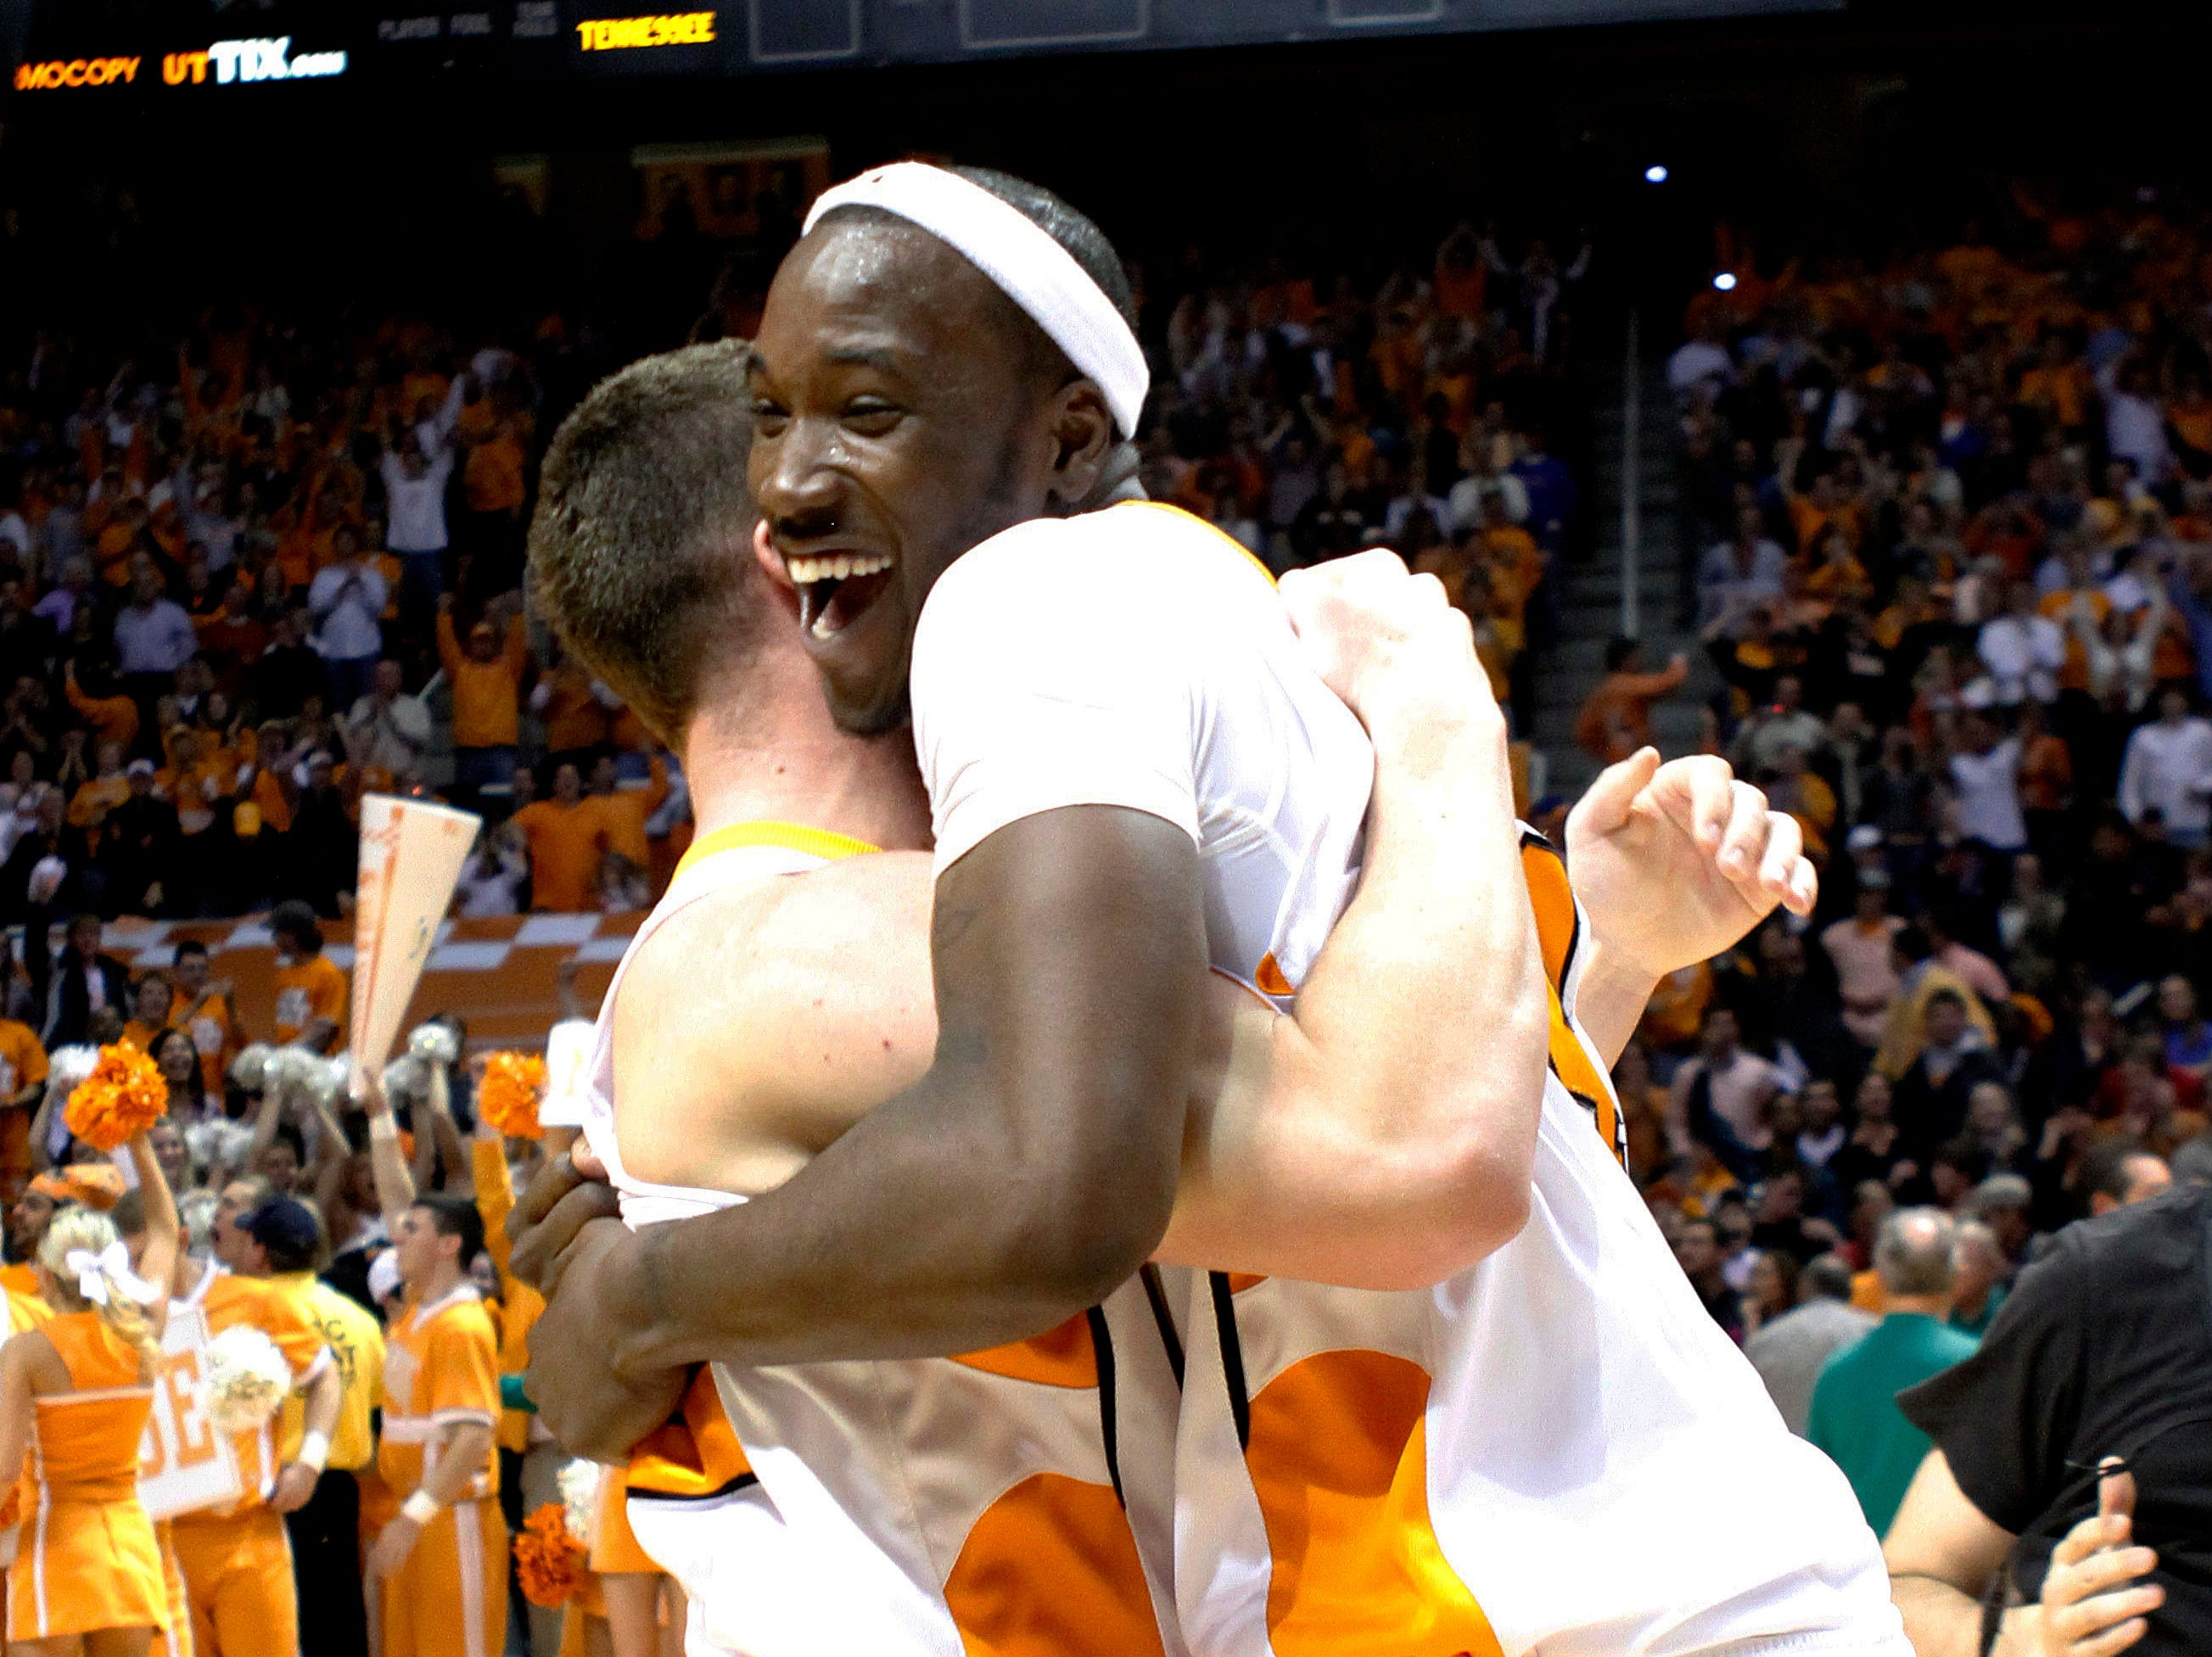 Tennessee's Wayne Chism, right, celebrates Tennessee's 76-68 victory over Kansas with teammate Stephen Pearl after their NCAA college basketball game Sunday, Jan. 10, 2010, in Knoxville, Tenn.